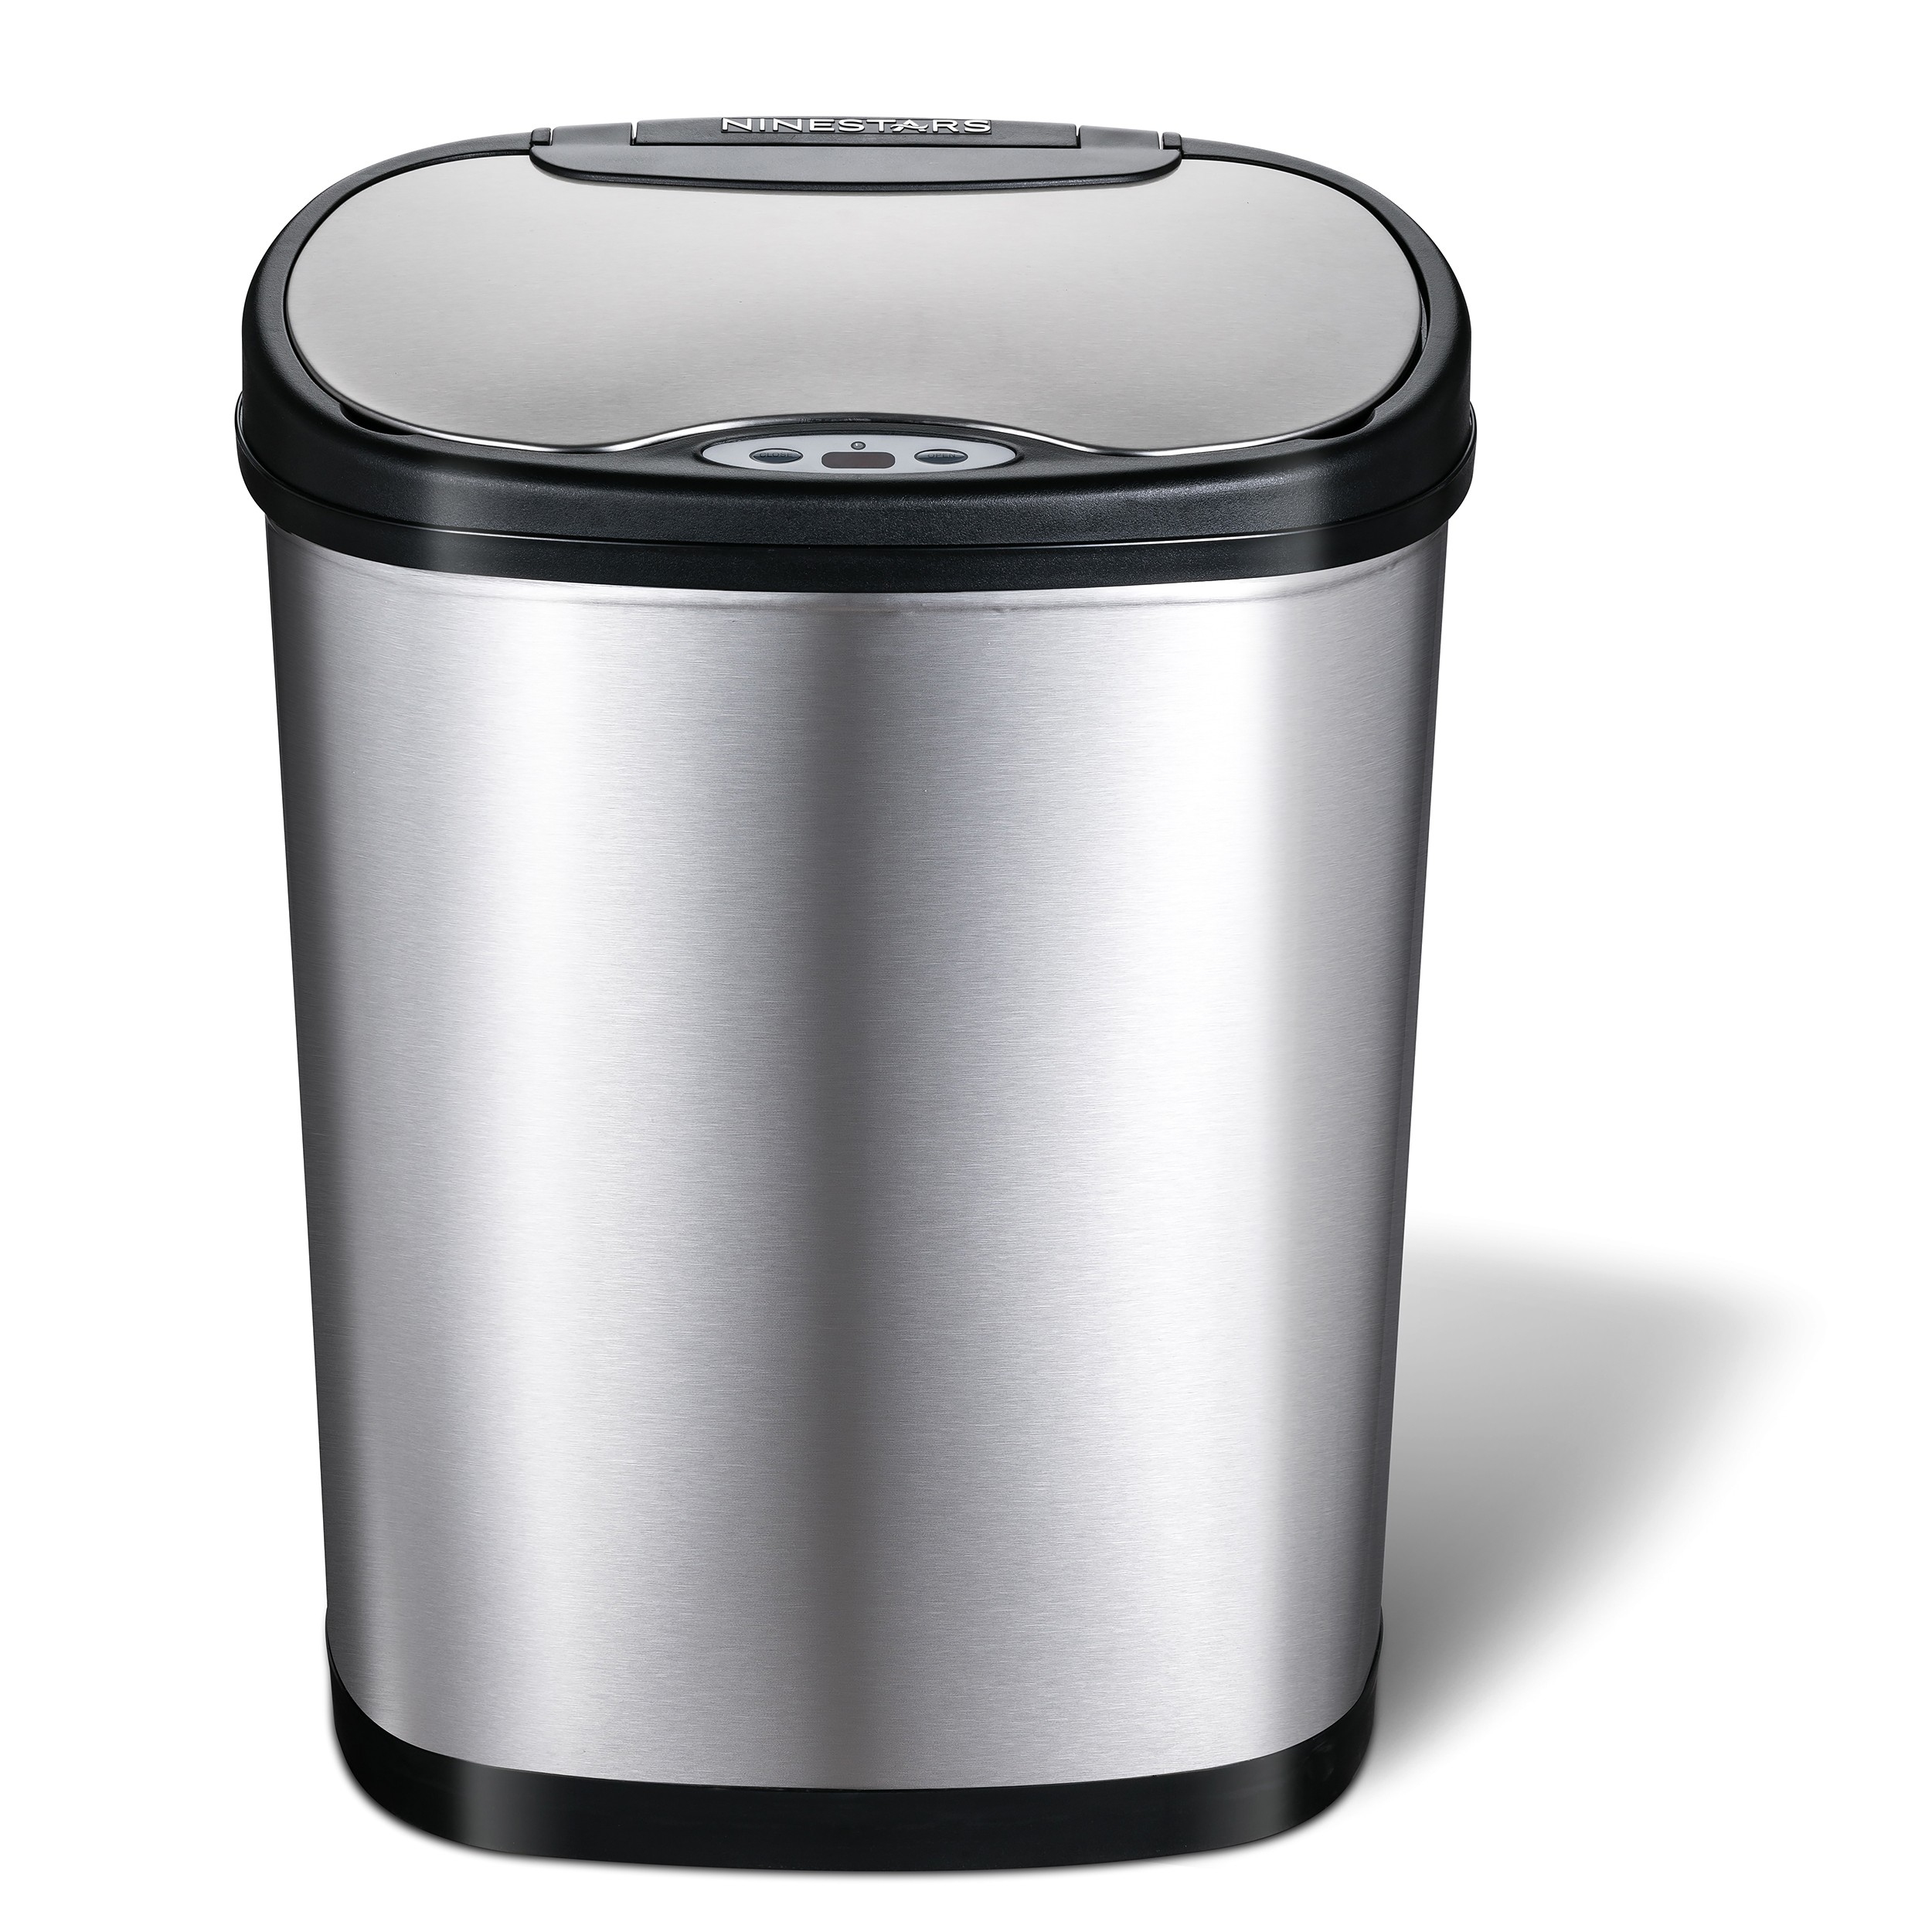 42 Litre Oval Plus Series Stainless Steel Autobin